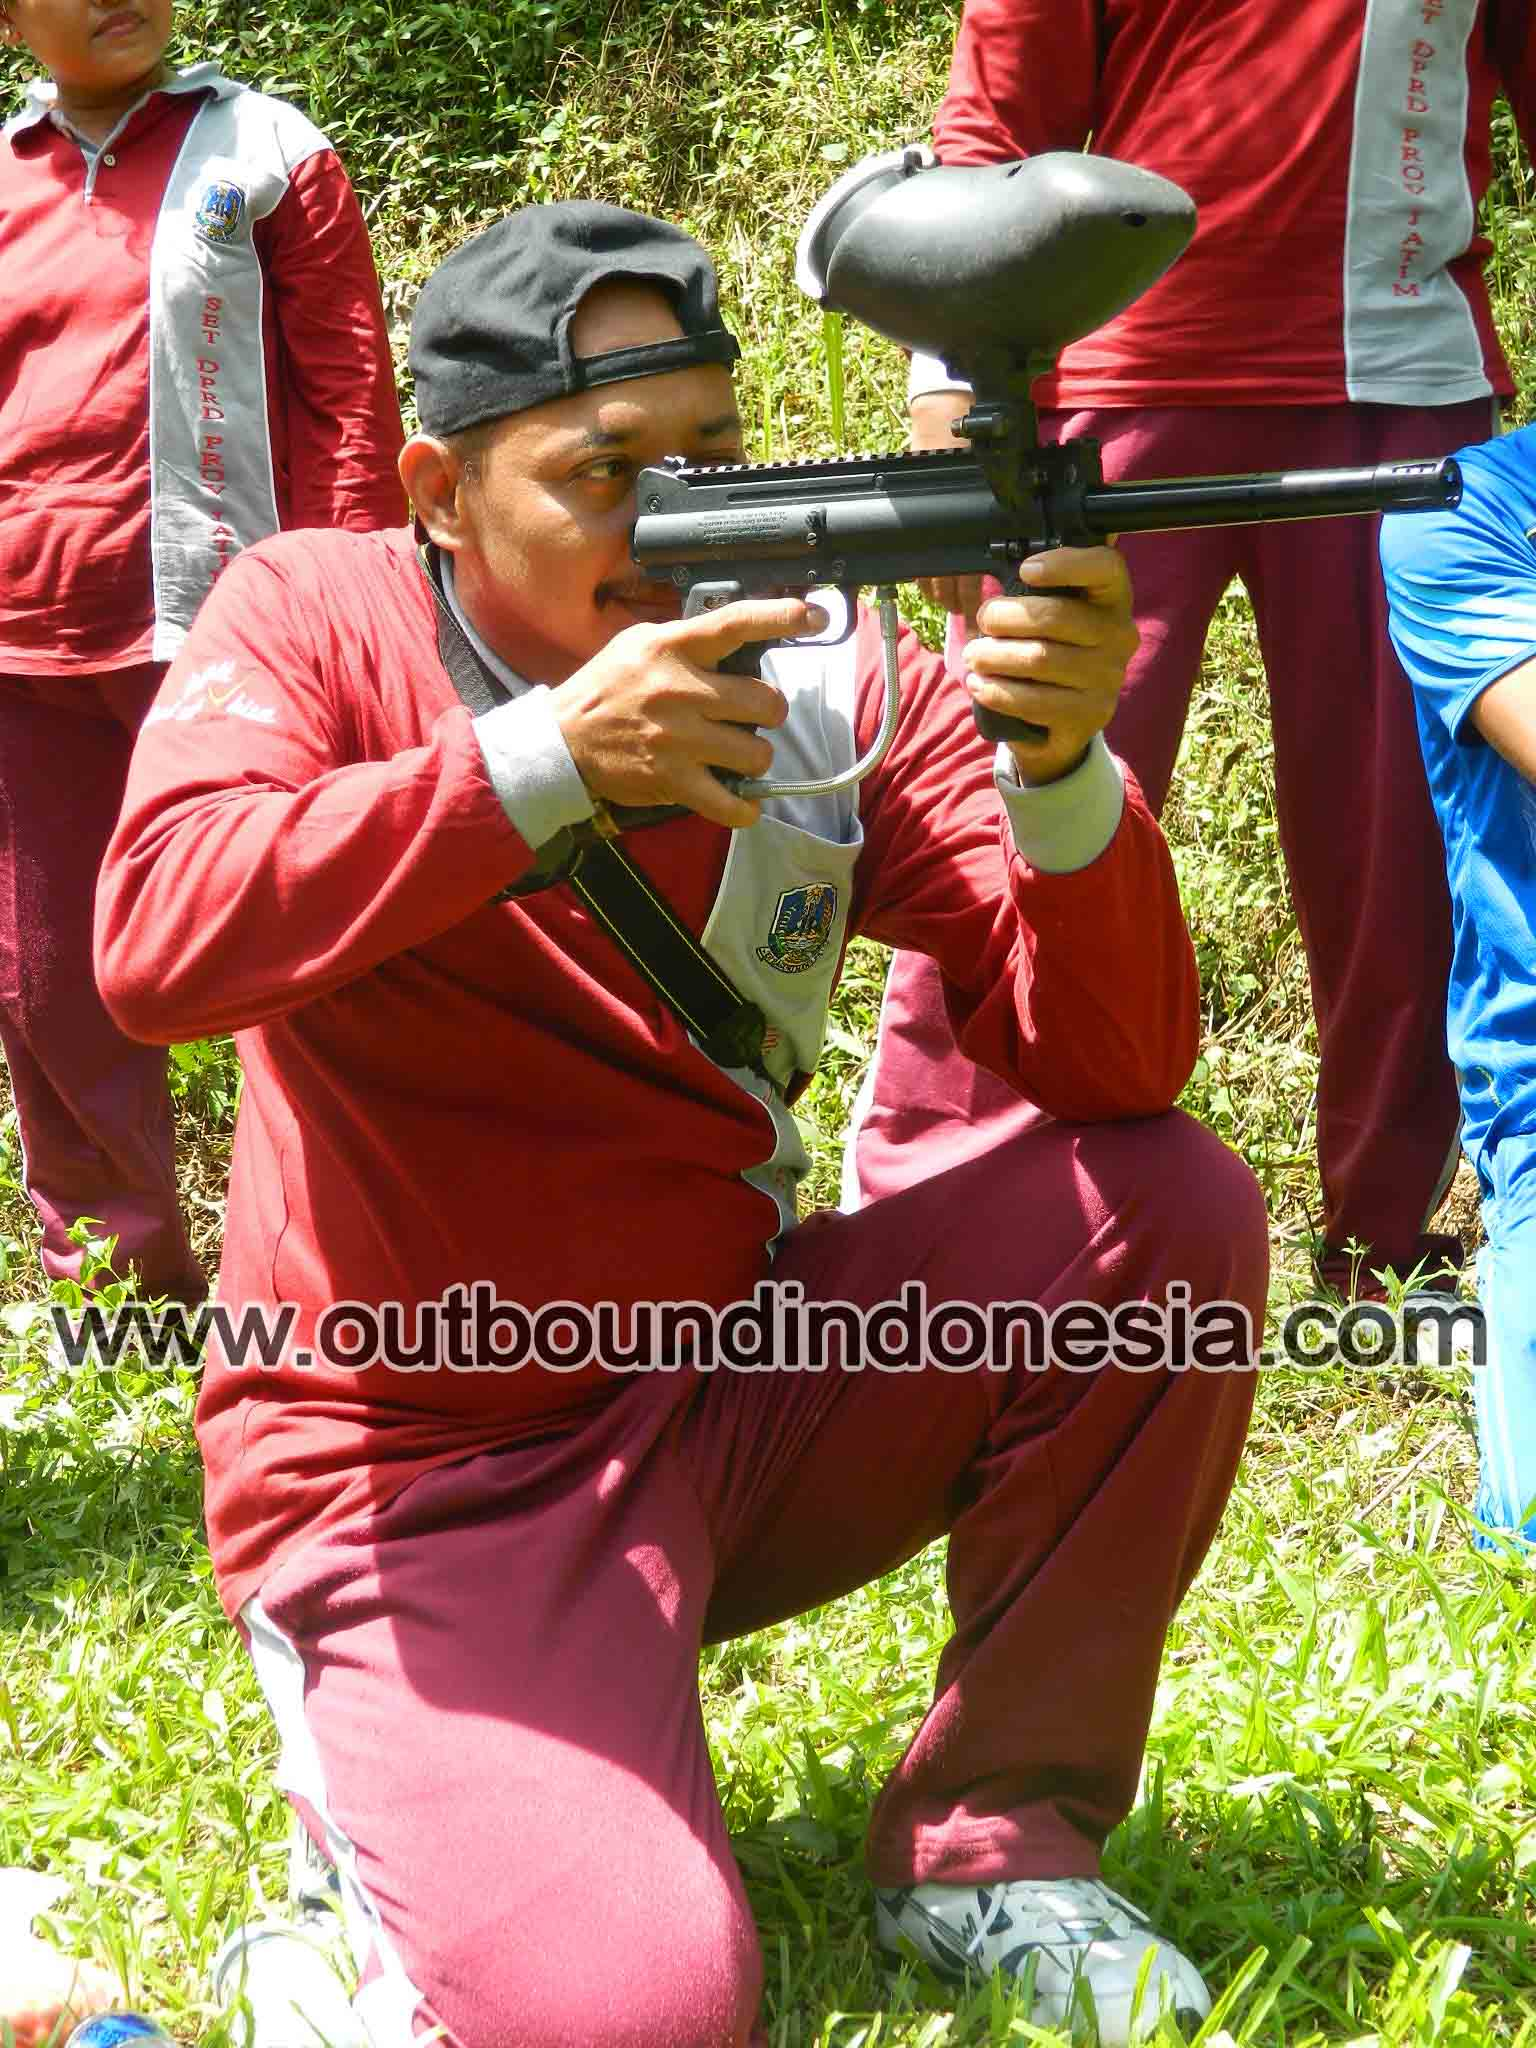 Paintball di trawas, http://www.outboundindonesia.com, 081 287 000 995